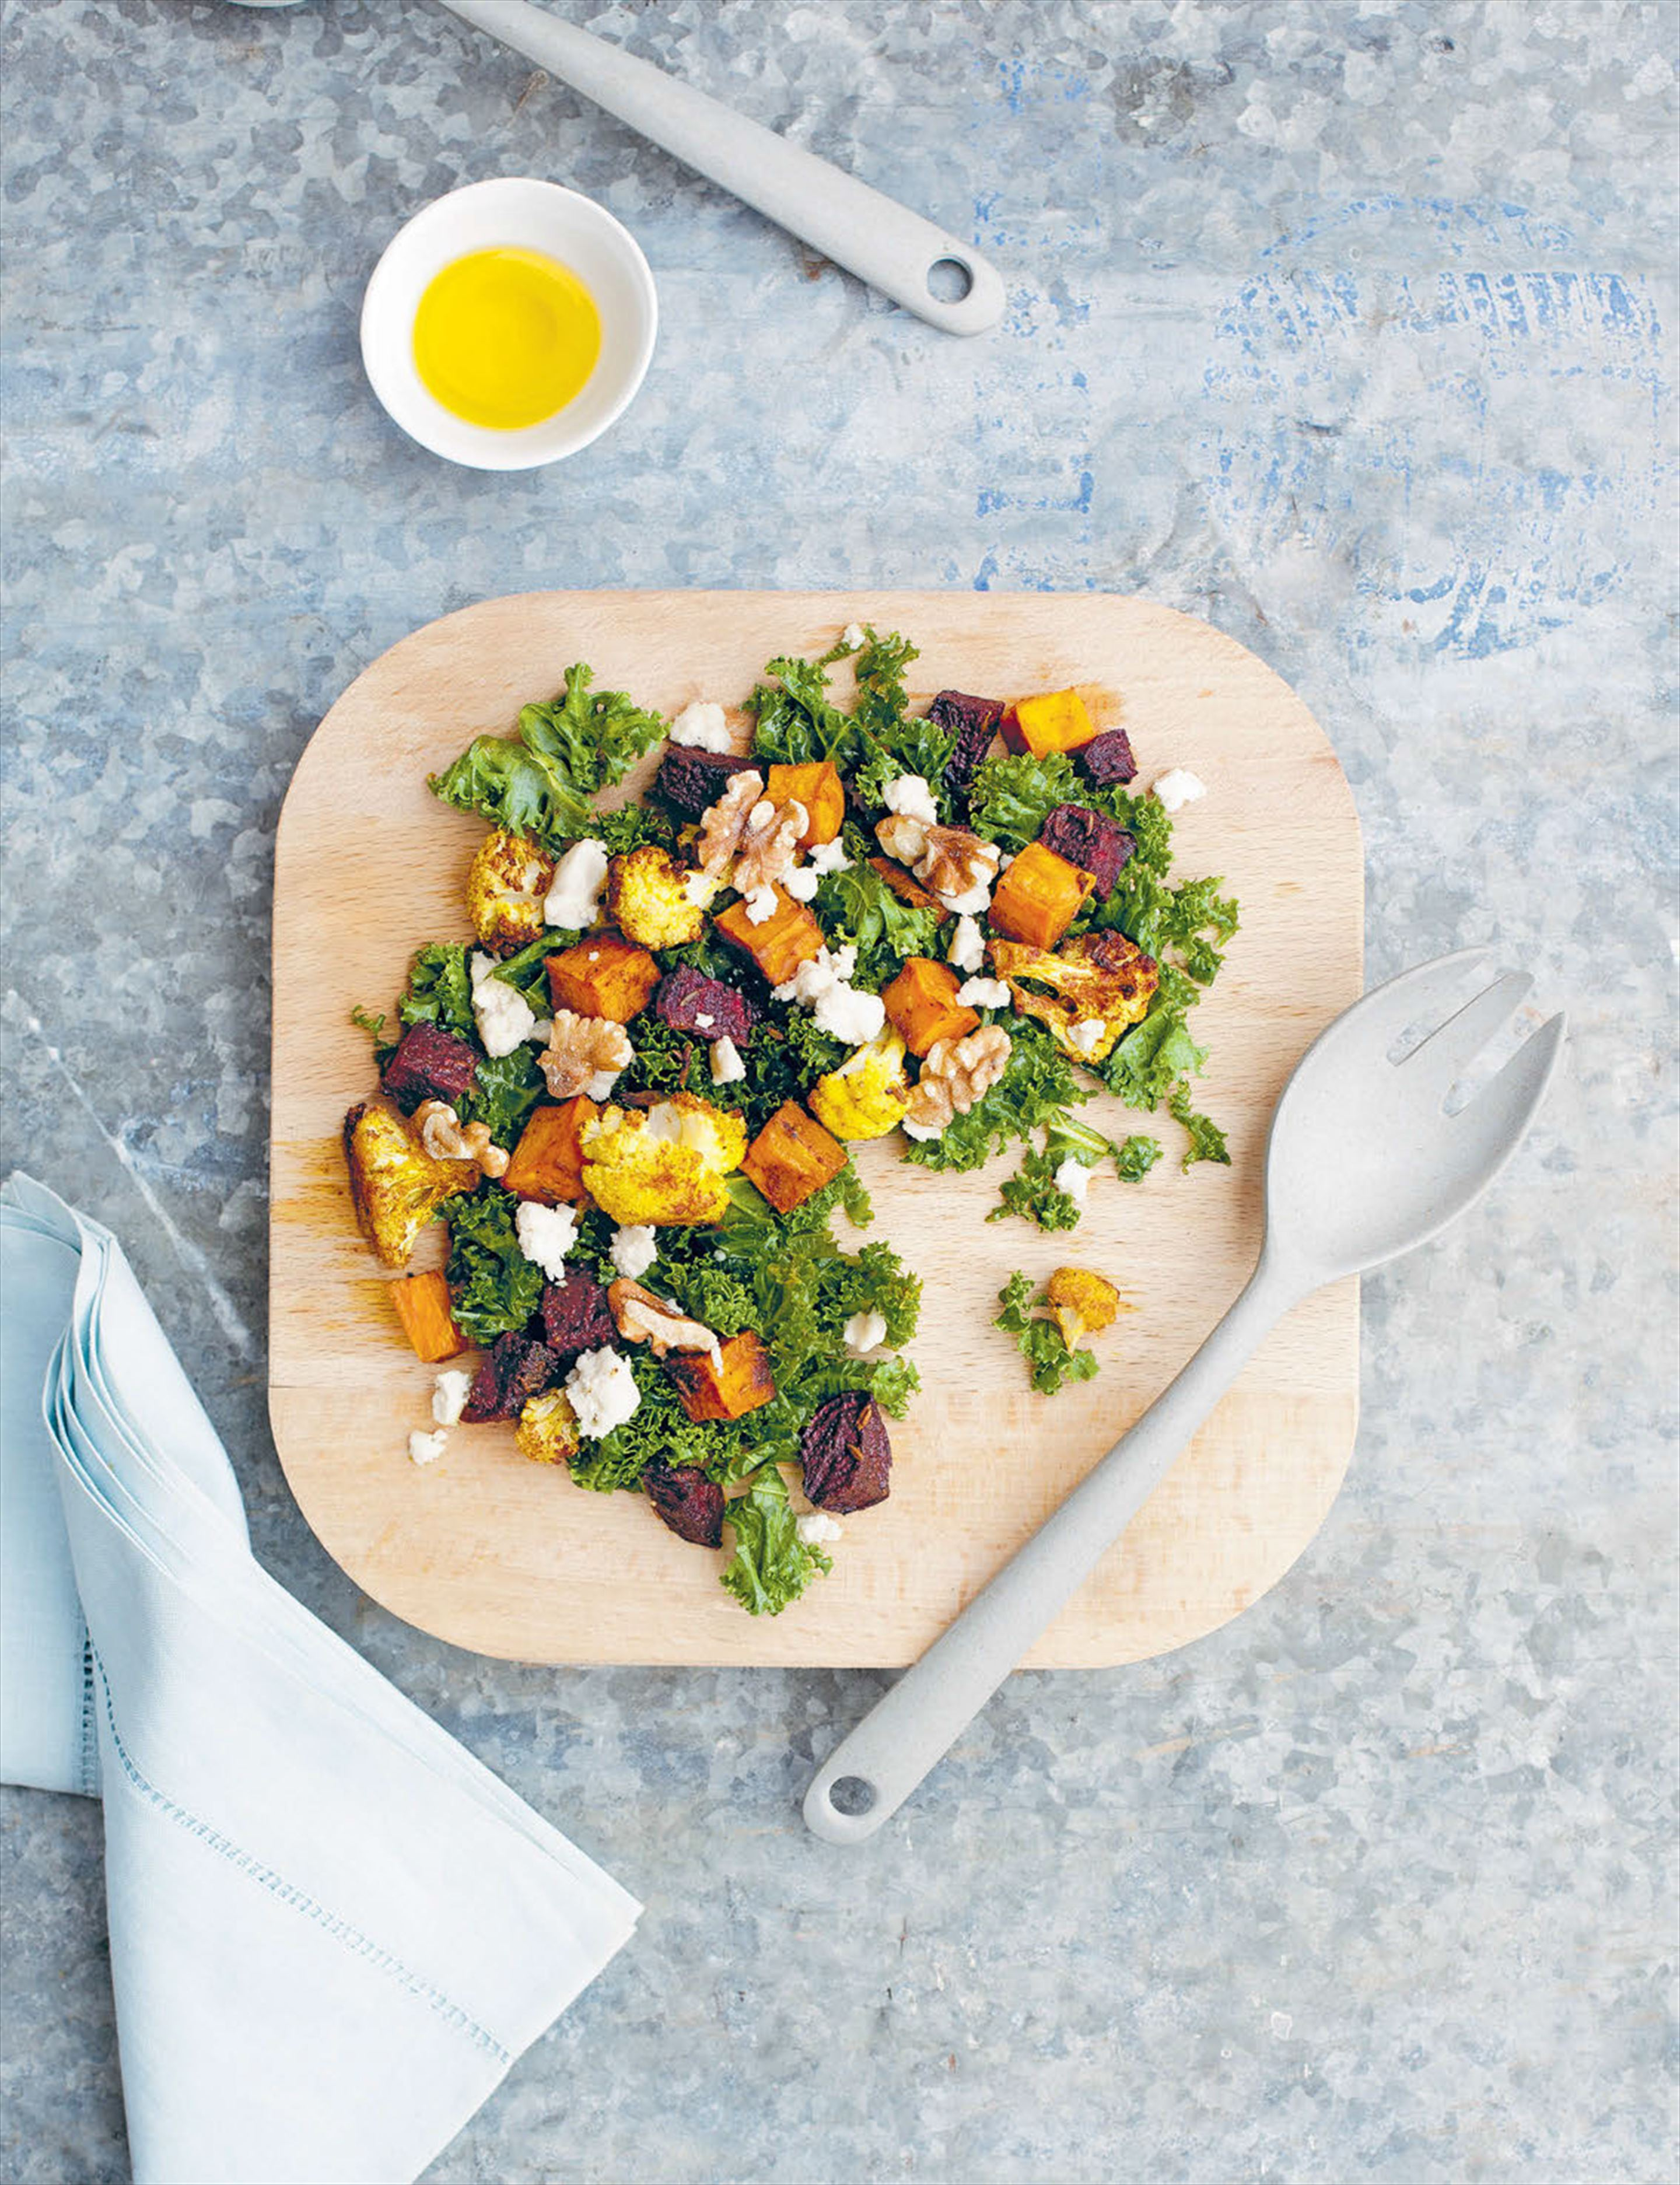 Roasted vegetable salad with cashew 'goat's' cheese